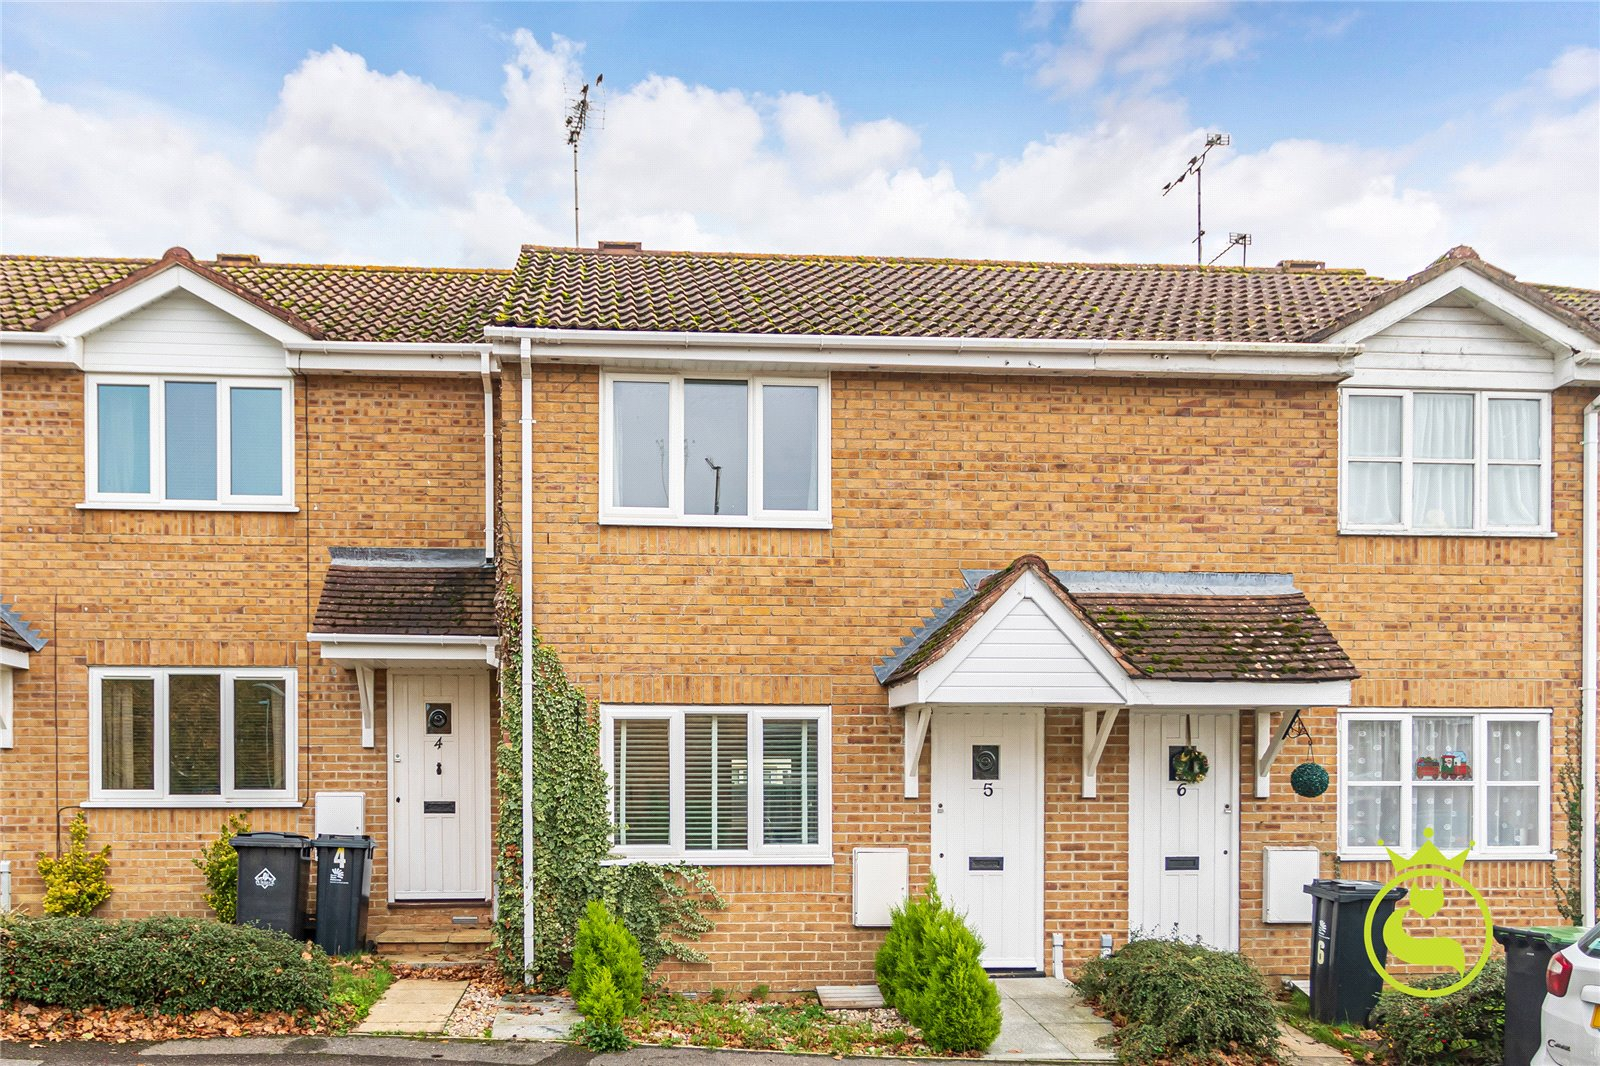 2 bed house to rent in Oakley Gardens, Upton, BH16